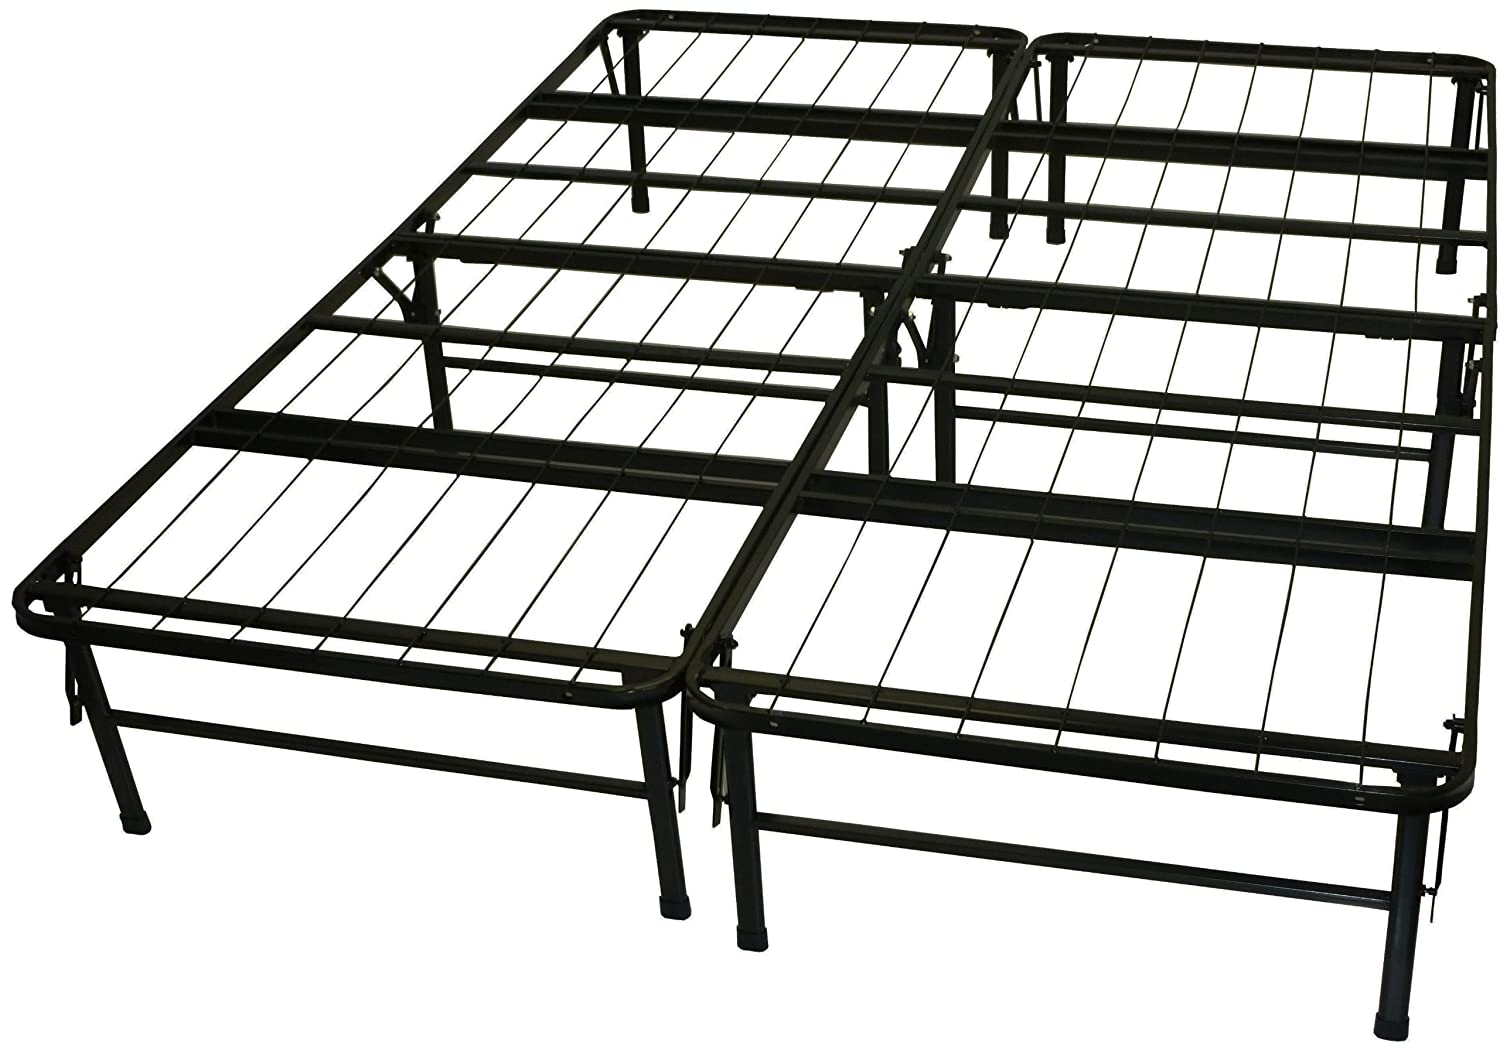 Steel Bed Frames Queen Metal Bed Frames Queen Size Extra: NEW! Heavy Duty Metal Posture Support QUEEN Size Mattress